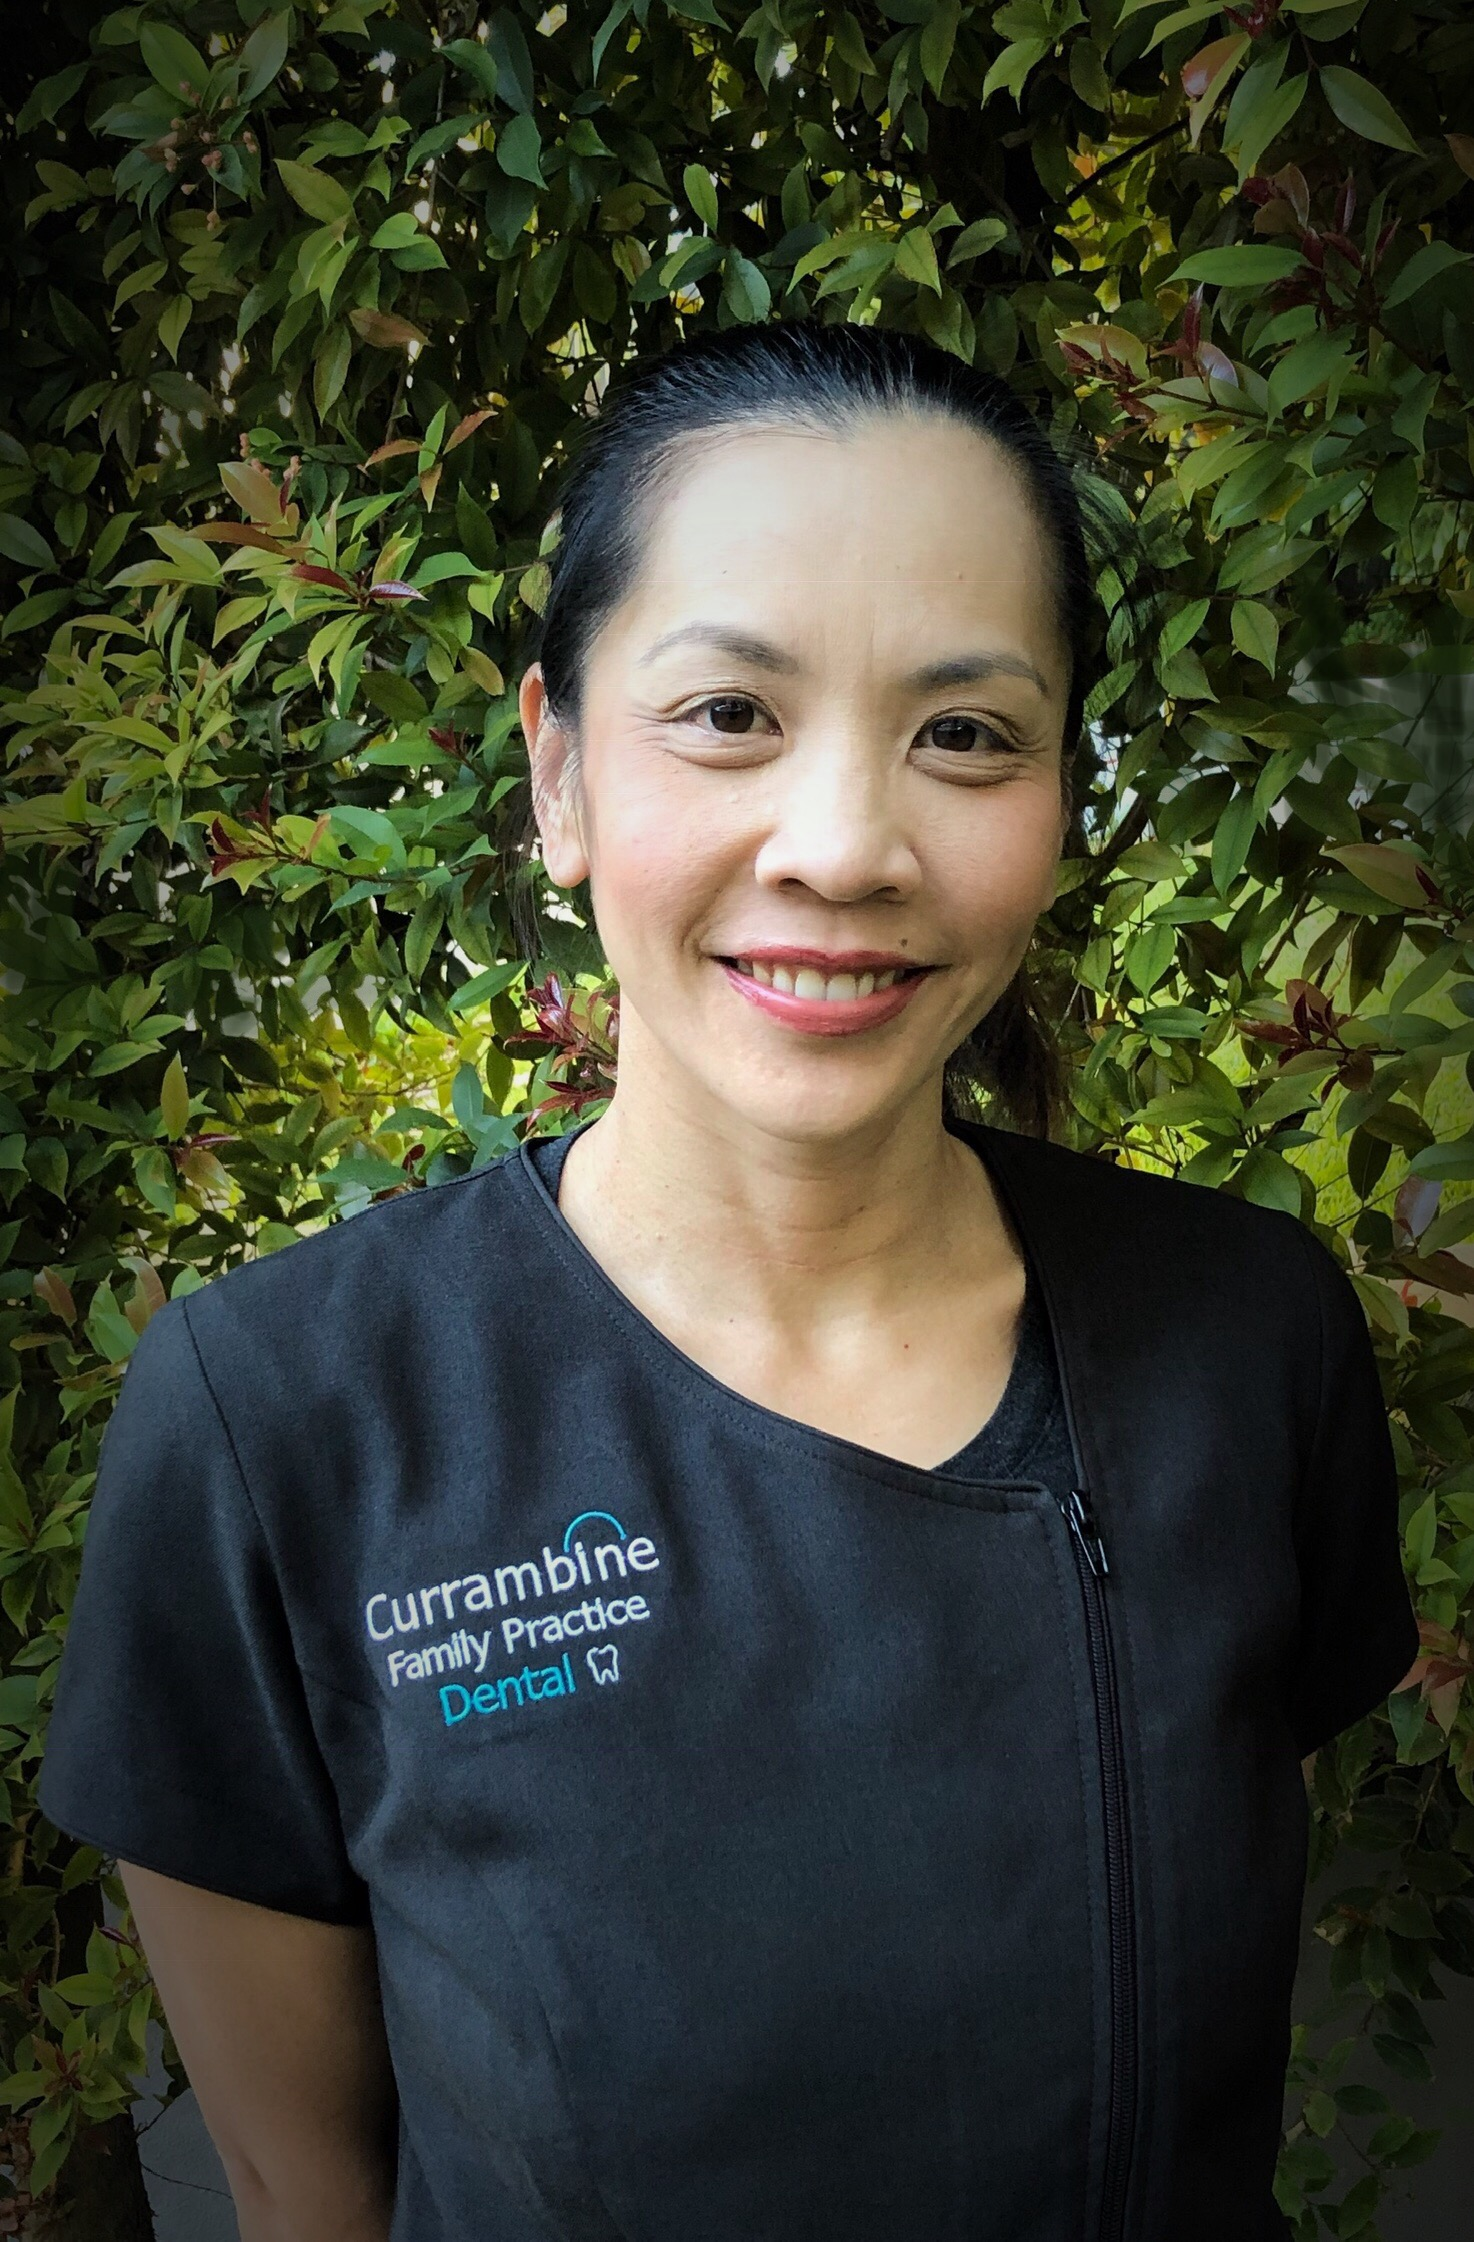 Introducing Currambine Family Practice Dental - We would like to welcome our new dentist Dr Hang Pham. Hang has over 20 years experience in private dentistry in Perth. She knows our practice well, her husband is Currambine Family Practice principal Dr Tim Koh.Hang knows how important it is to find a dentist that you can trust. From the moment you make a booking to when you have finished a consultation, her priority is to have you feeling comfortable and confident in the care you receive. She takes the time to understand what your worries are and what is important to you.Hang sees general dental patients of all ages from young children to adults and specialises in treating anxious patients. Hang is available on weekdays.